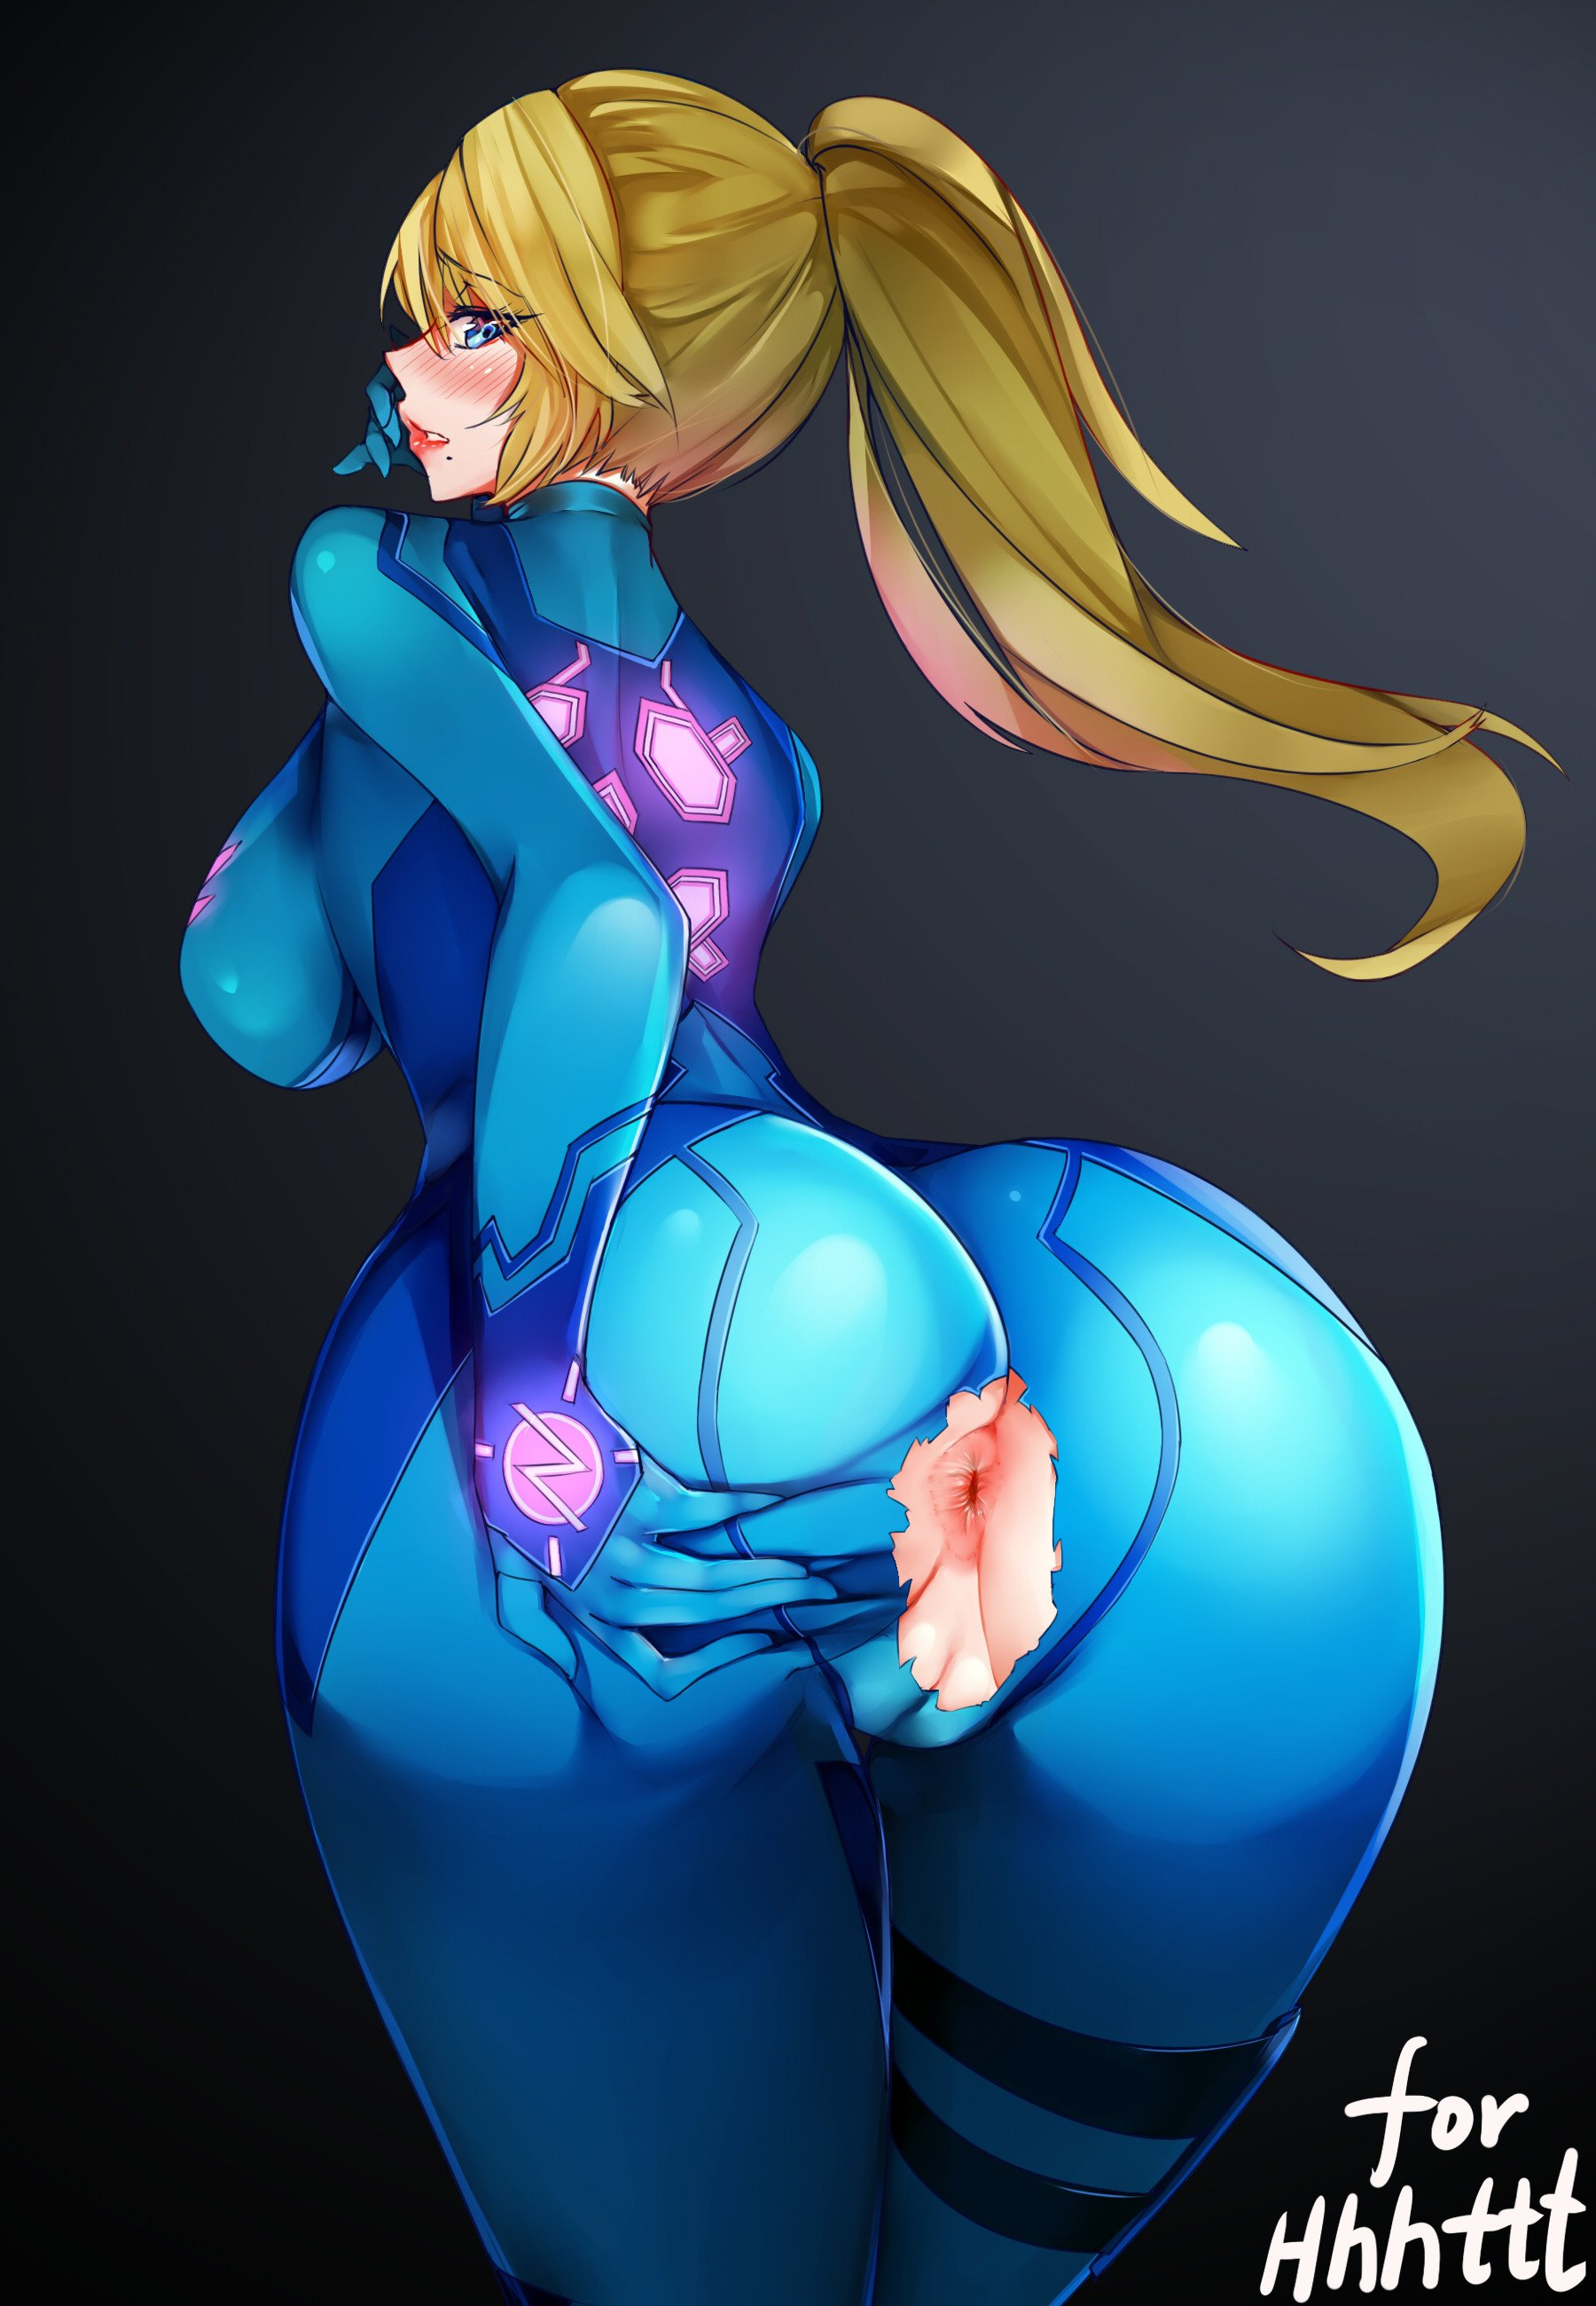 Two rich samus zero suit naked pussy